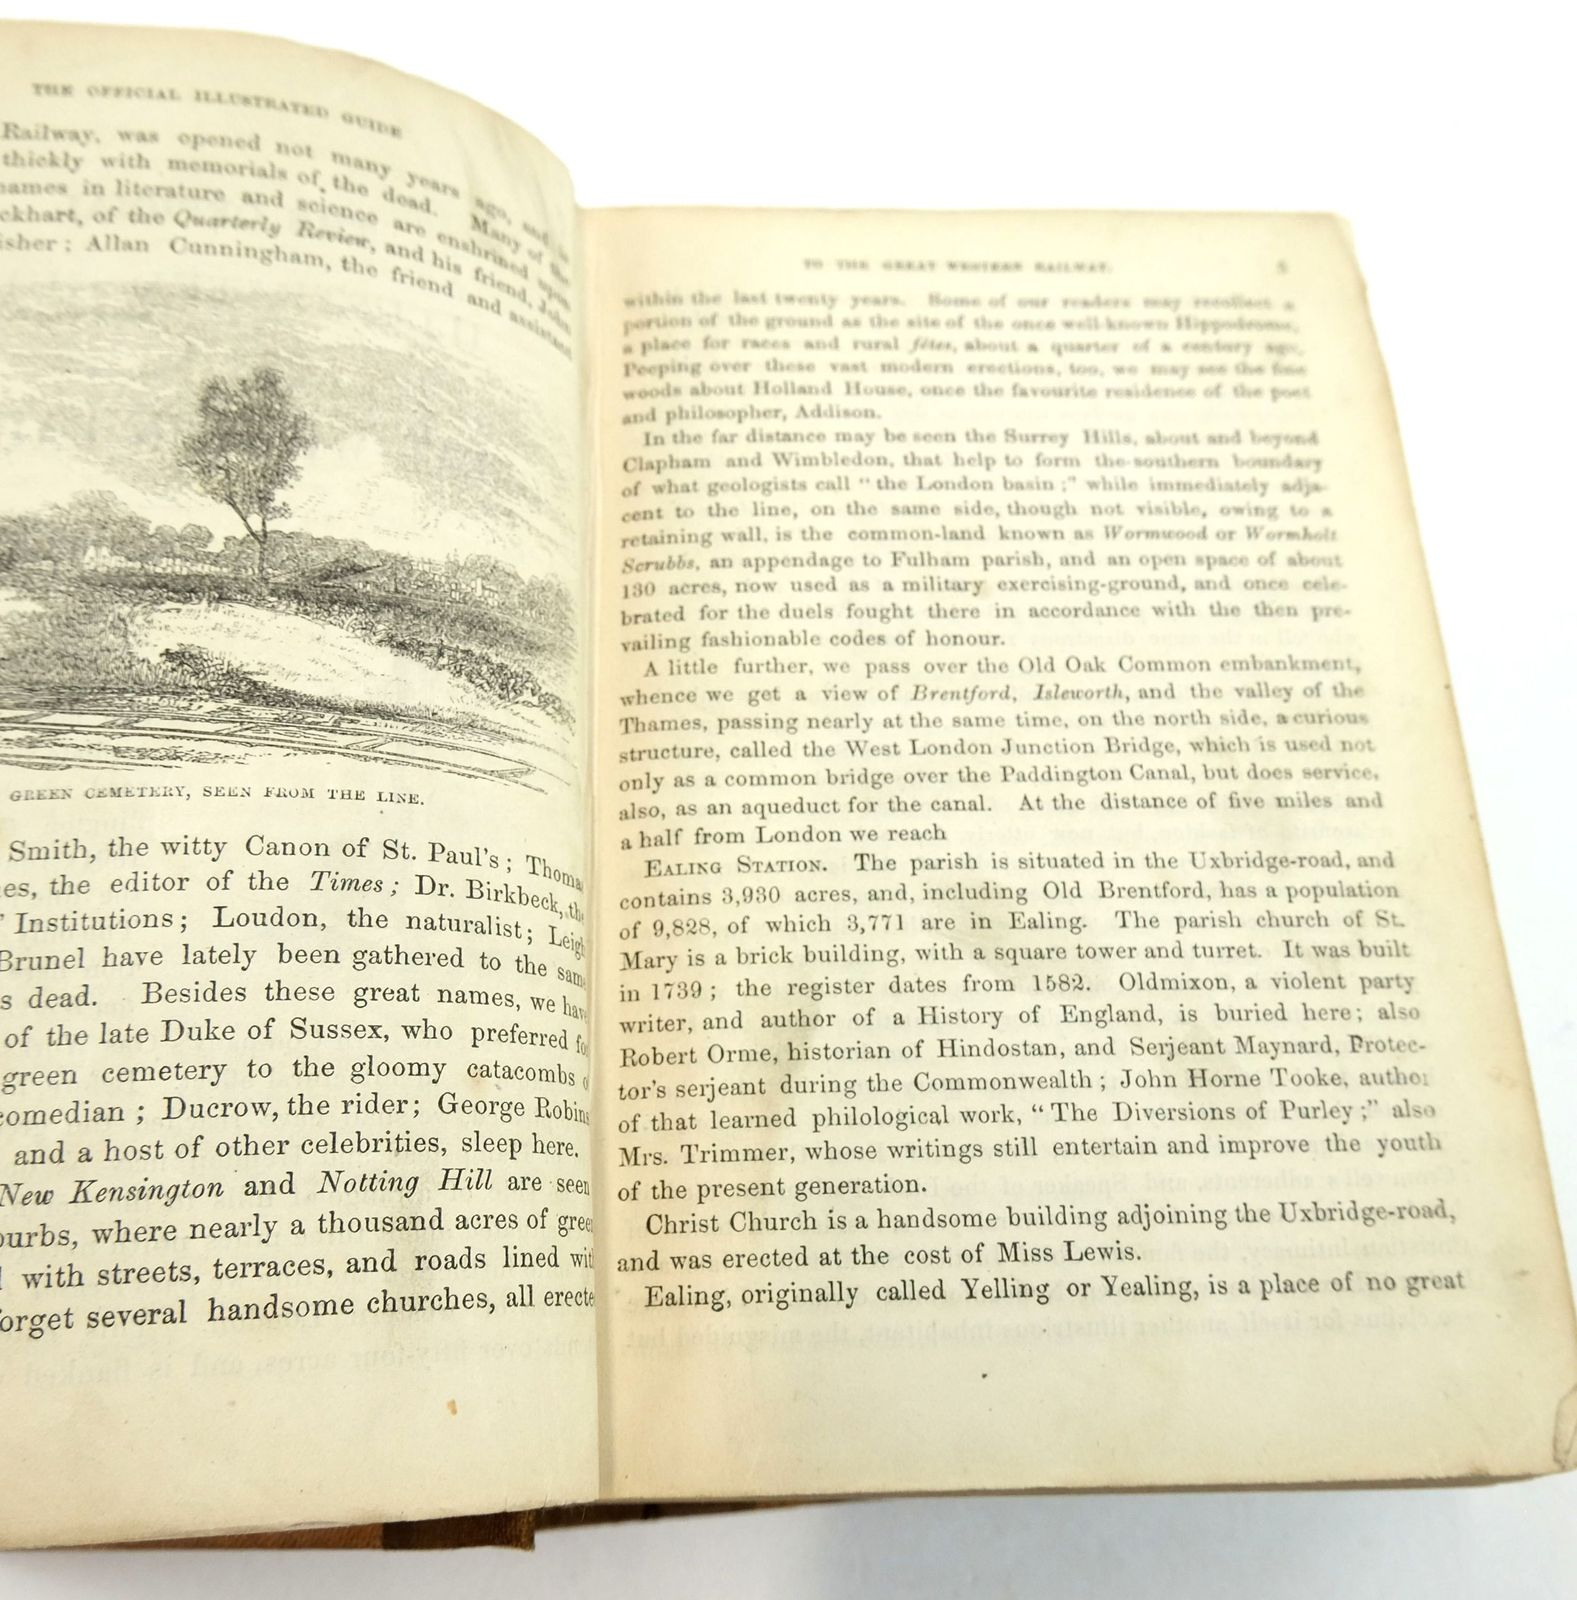 Photo of THE OFFICIAL ILLUSTRATED GUIDE TO THE GREAT WESTERN RAILWAY written by Measom, George published by Griffin Bohn and Co. (STOCK CODE: 1819920)  for sale by Stella & Rose's Books